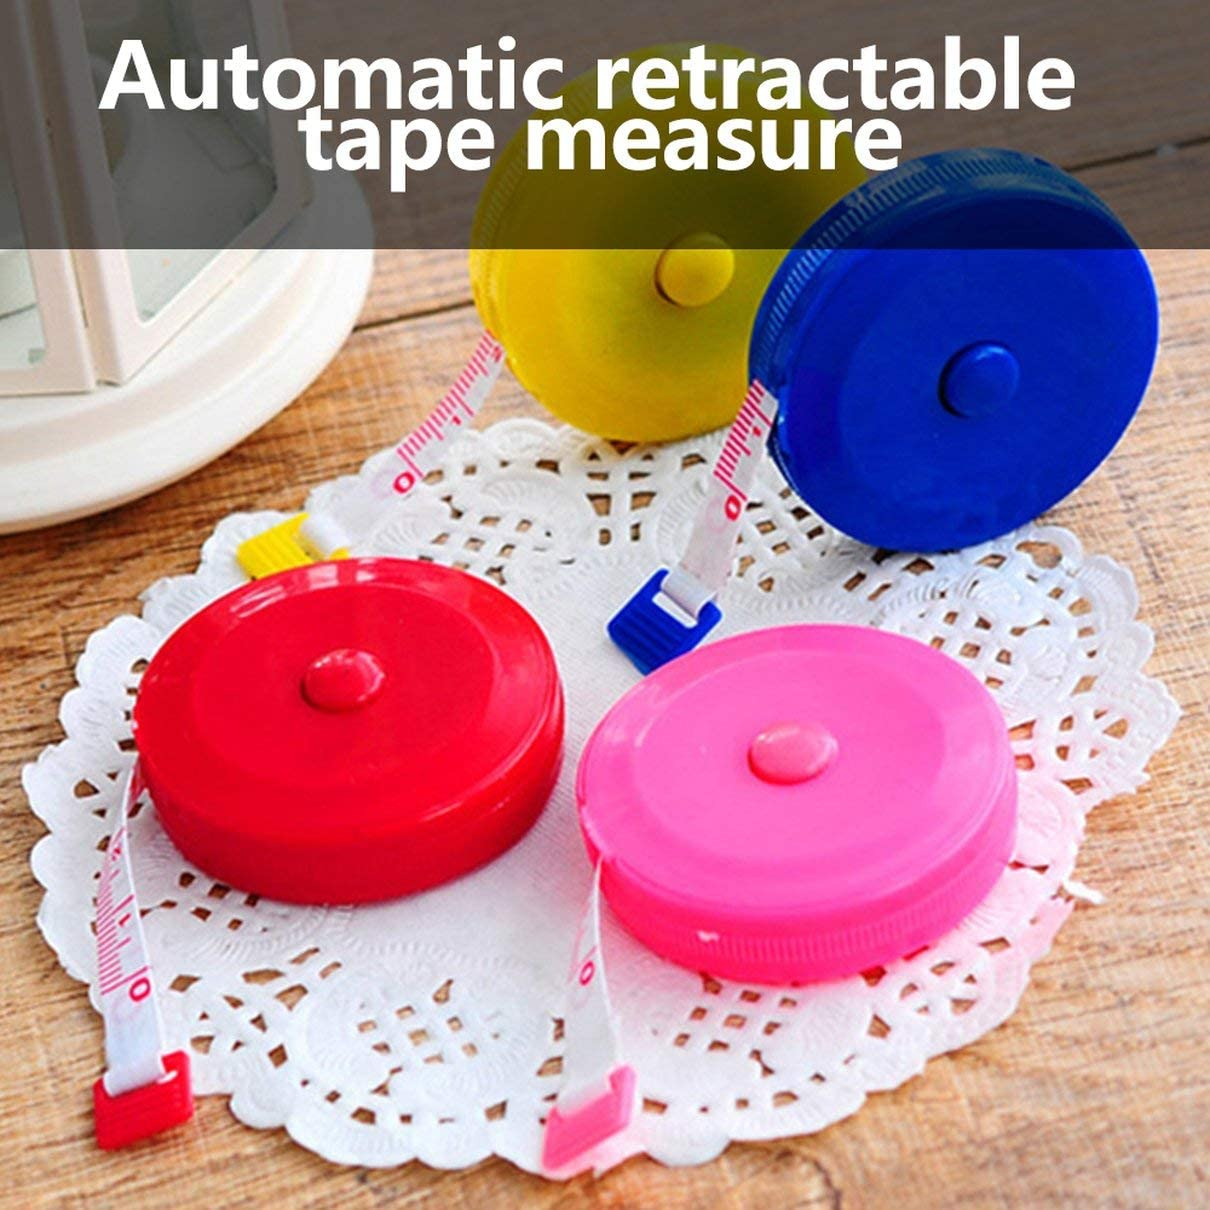 60-Inch 1.5 Meter Soft and Retractable Tape Measure Medical Body Measurement Tailor Sewing Craft Cloth Dieting Measuring Tape